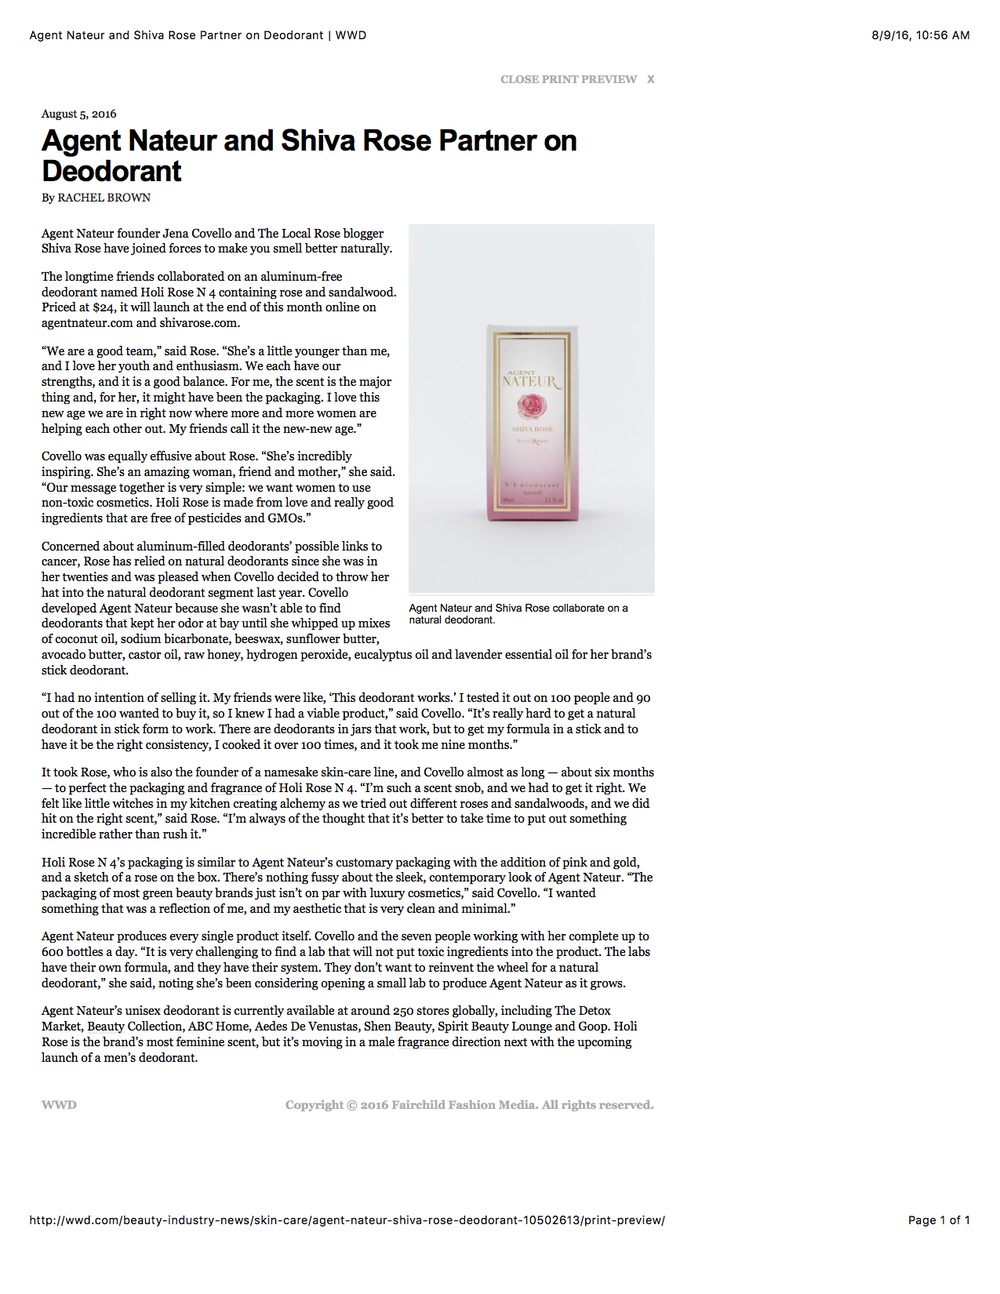 Agent Nateur and Shiva Rose Partner on Deodorant  WWD copy.jpg